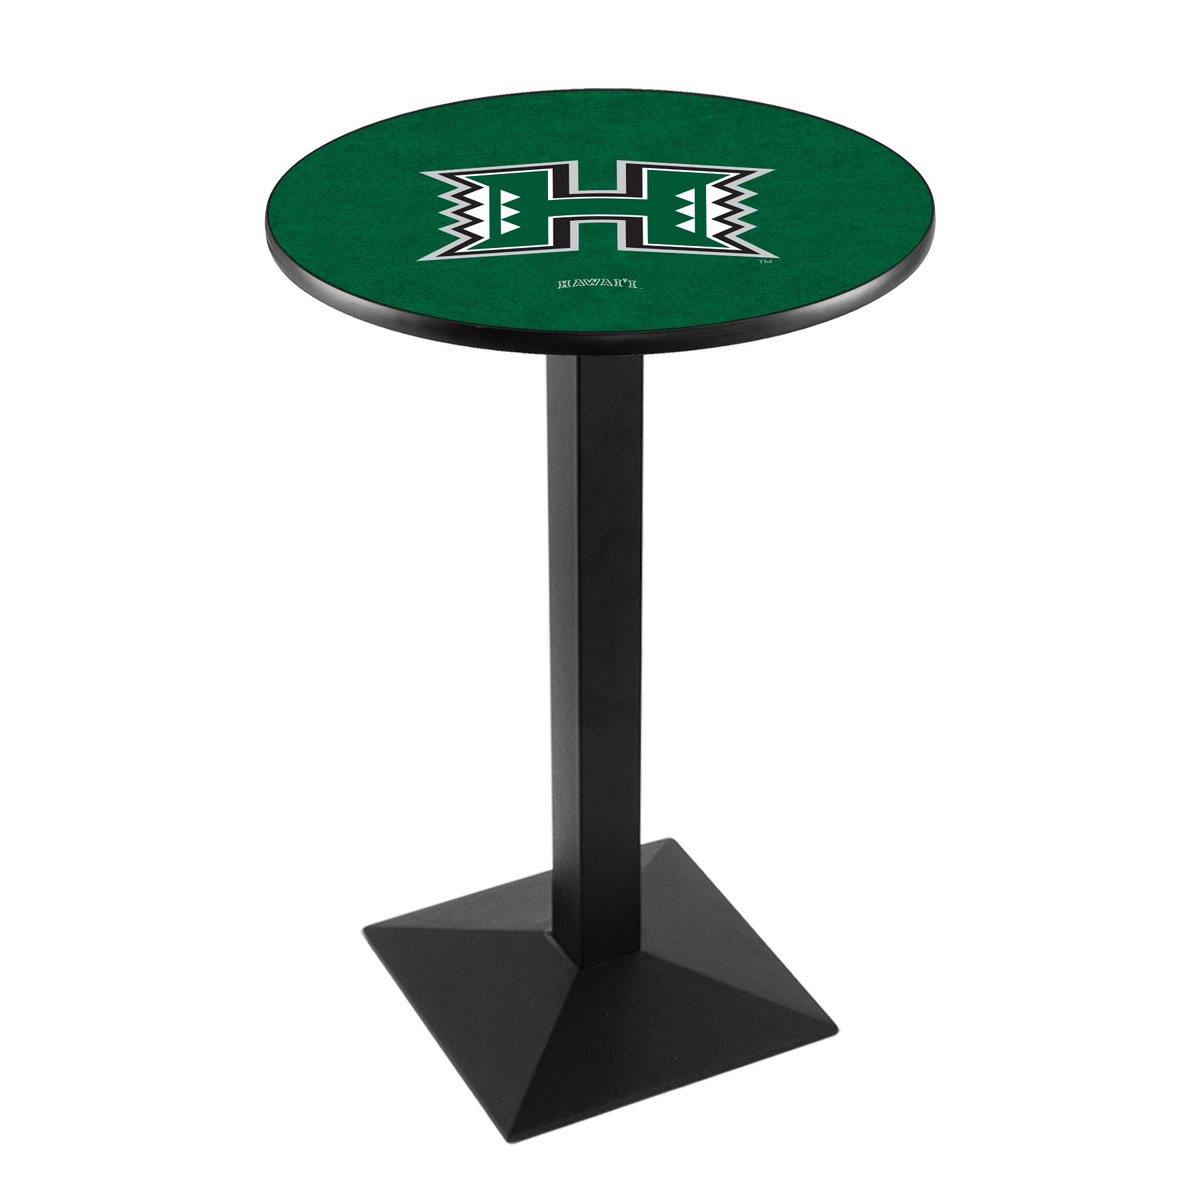 Cheap University Hawaii Logo Pub Bar Table Square Stand Product Photo